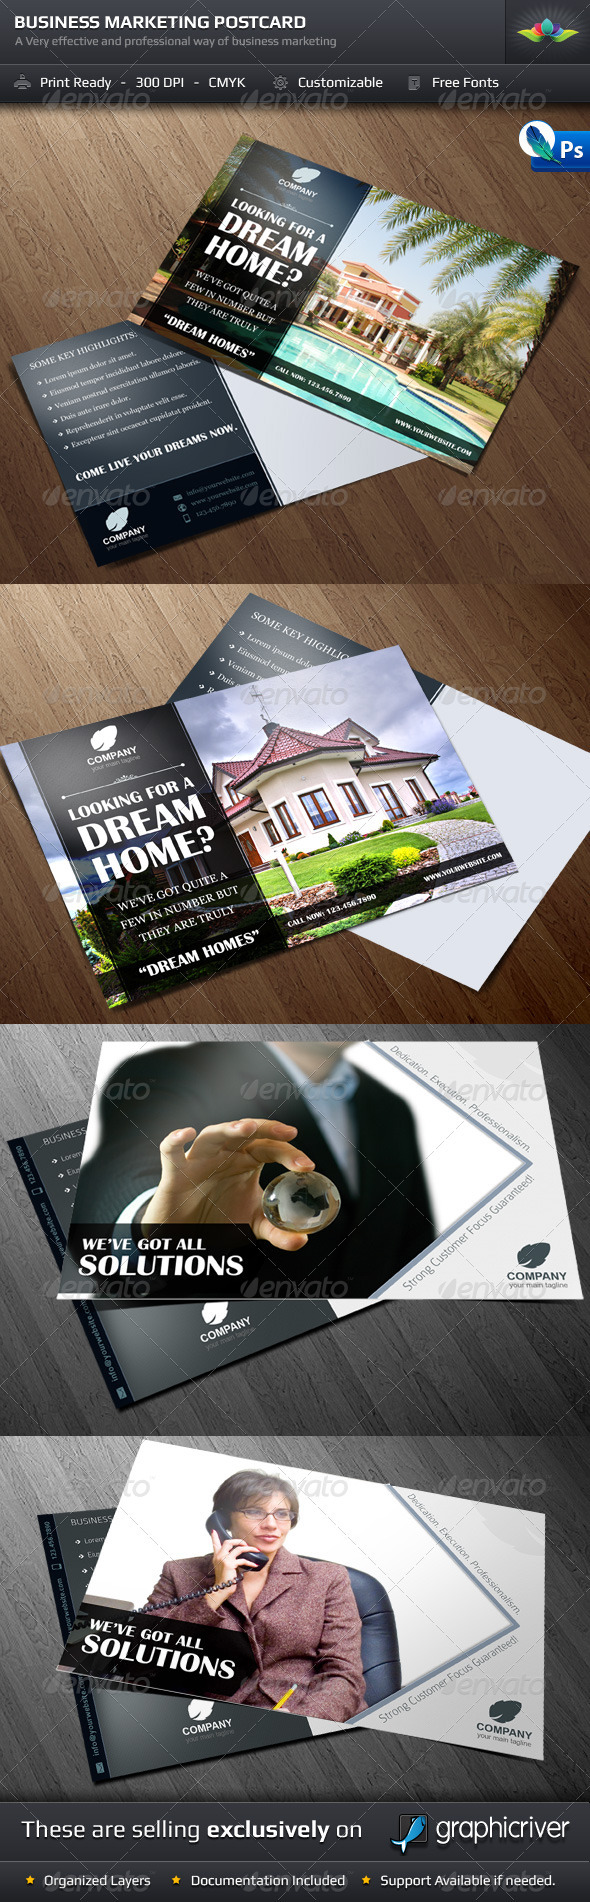 Advertising Postcard Template